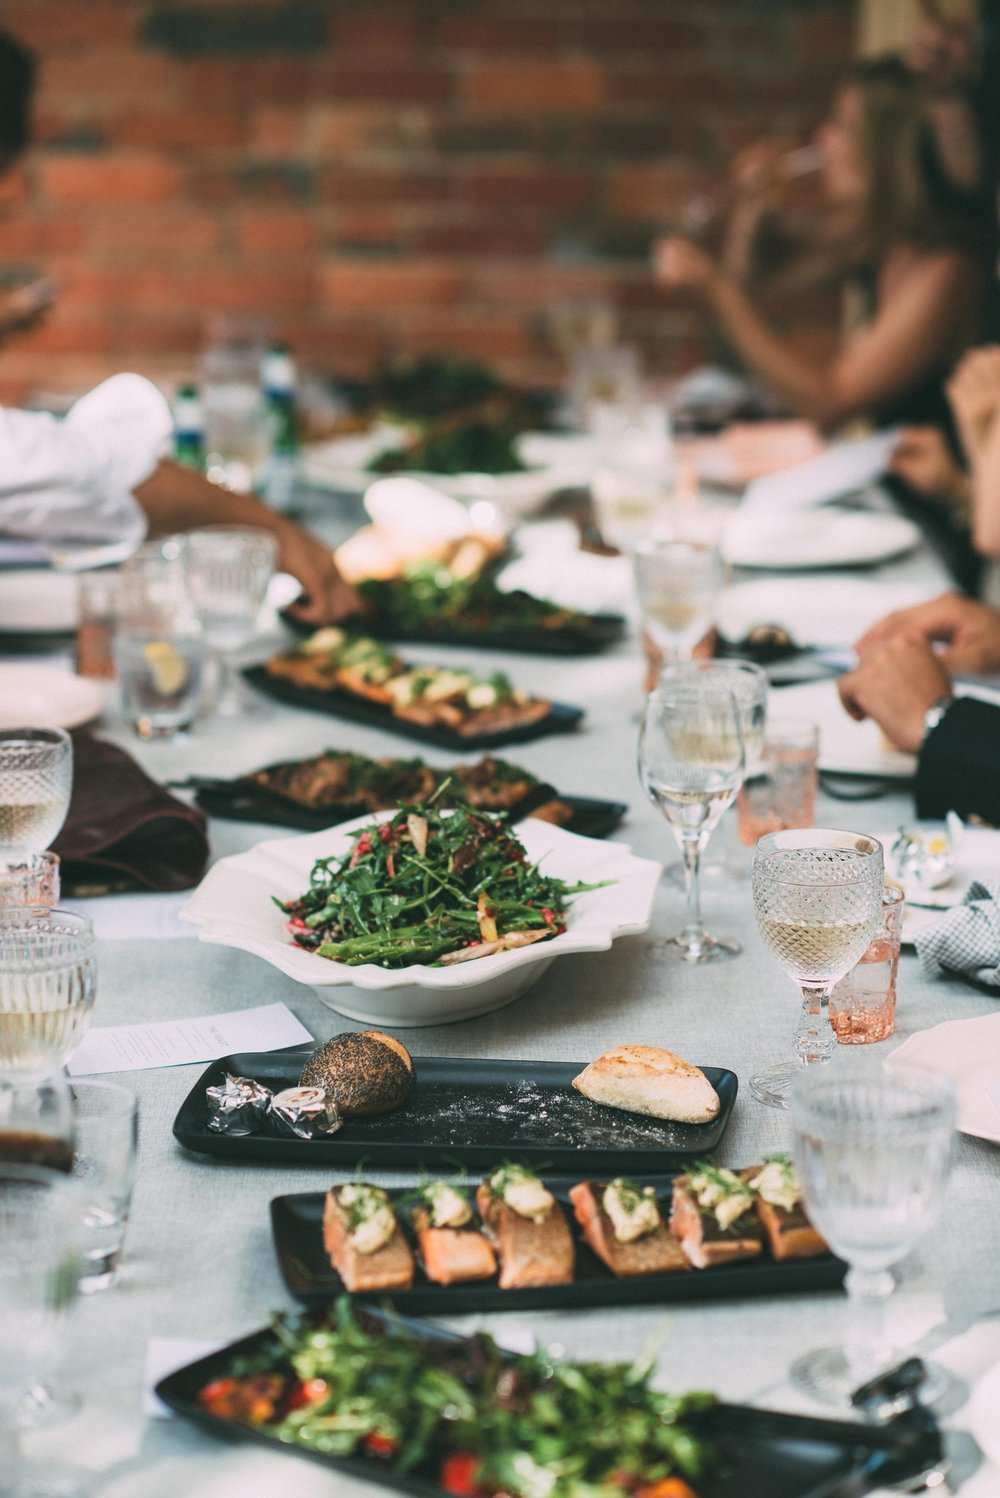 PRIVATE FUNCTIONS   For a decade, Cookes Food has collaborated with clients across Victoria.  Cookes Food has designed menus for dizzying high-fashion events, brought heart and gastronomy to intimate 40th birthday parties, and carefully crafted unforgettable meals for special occasions